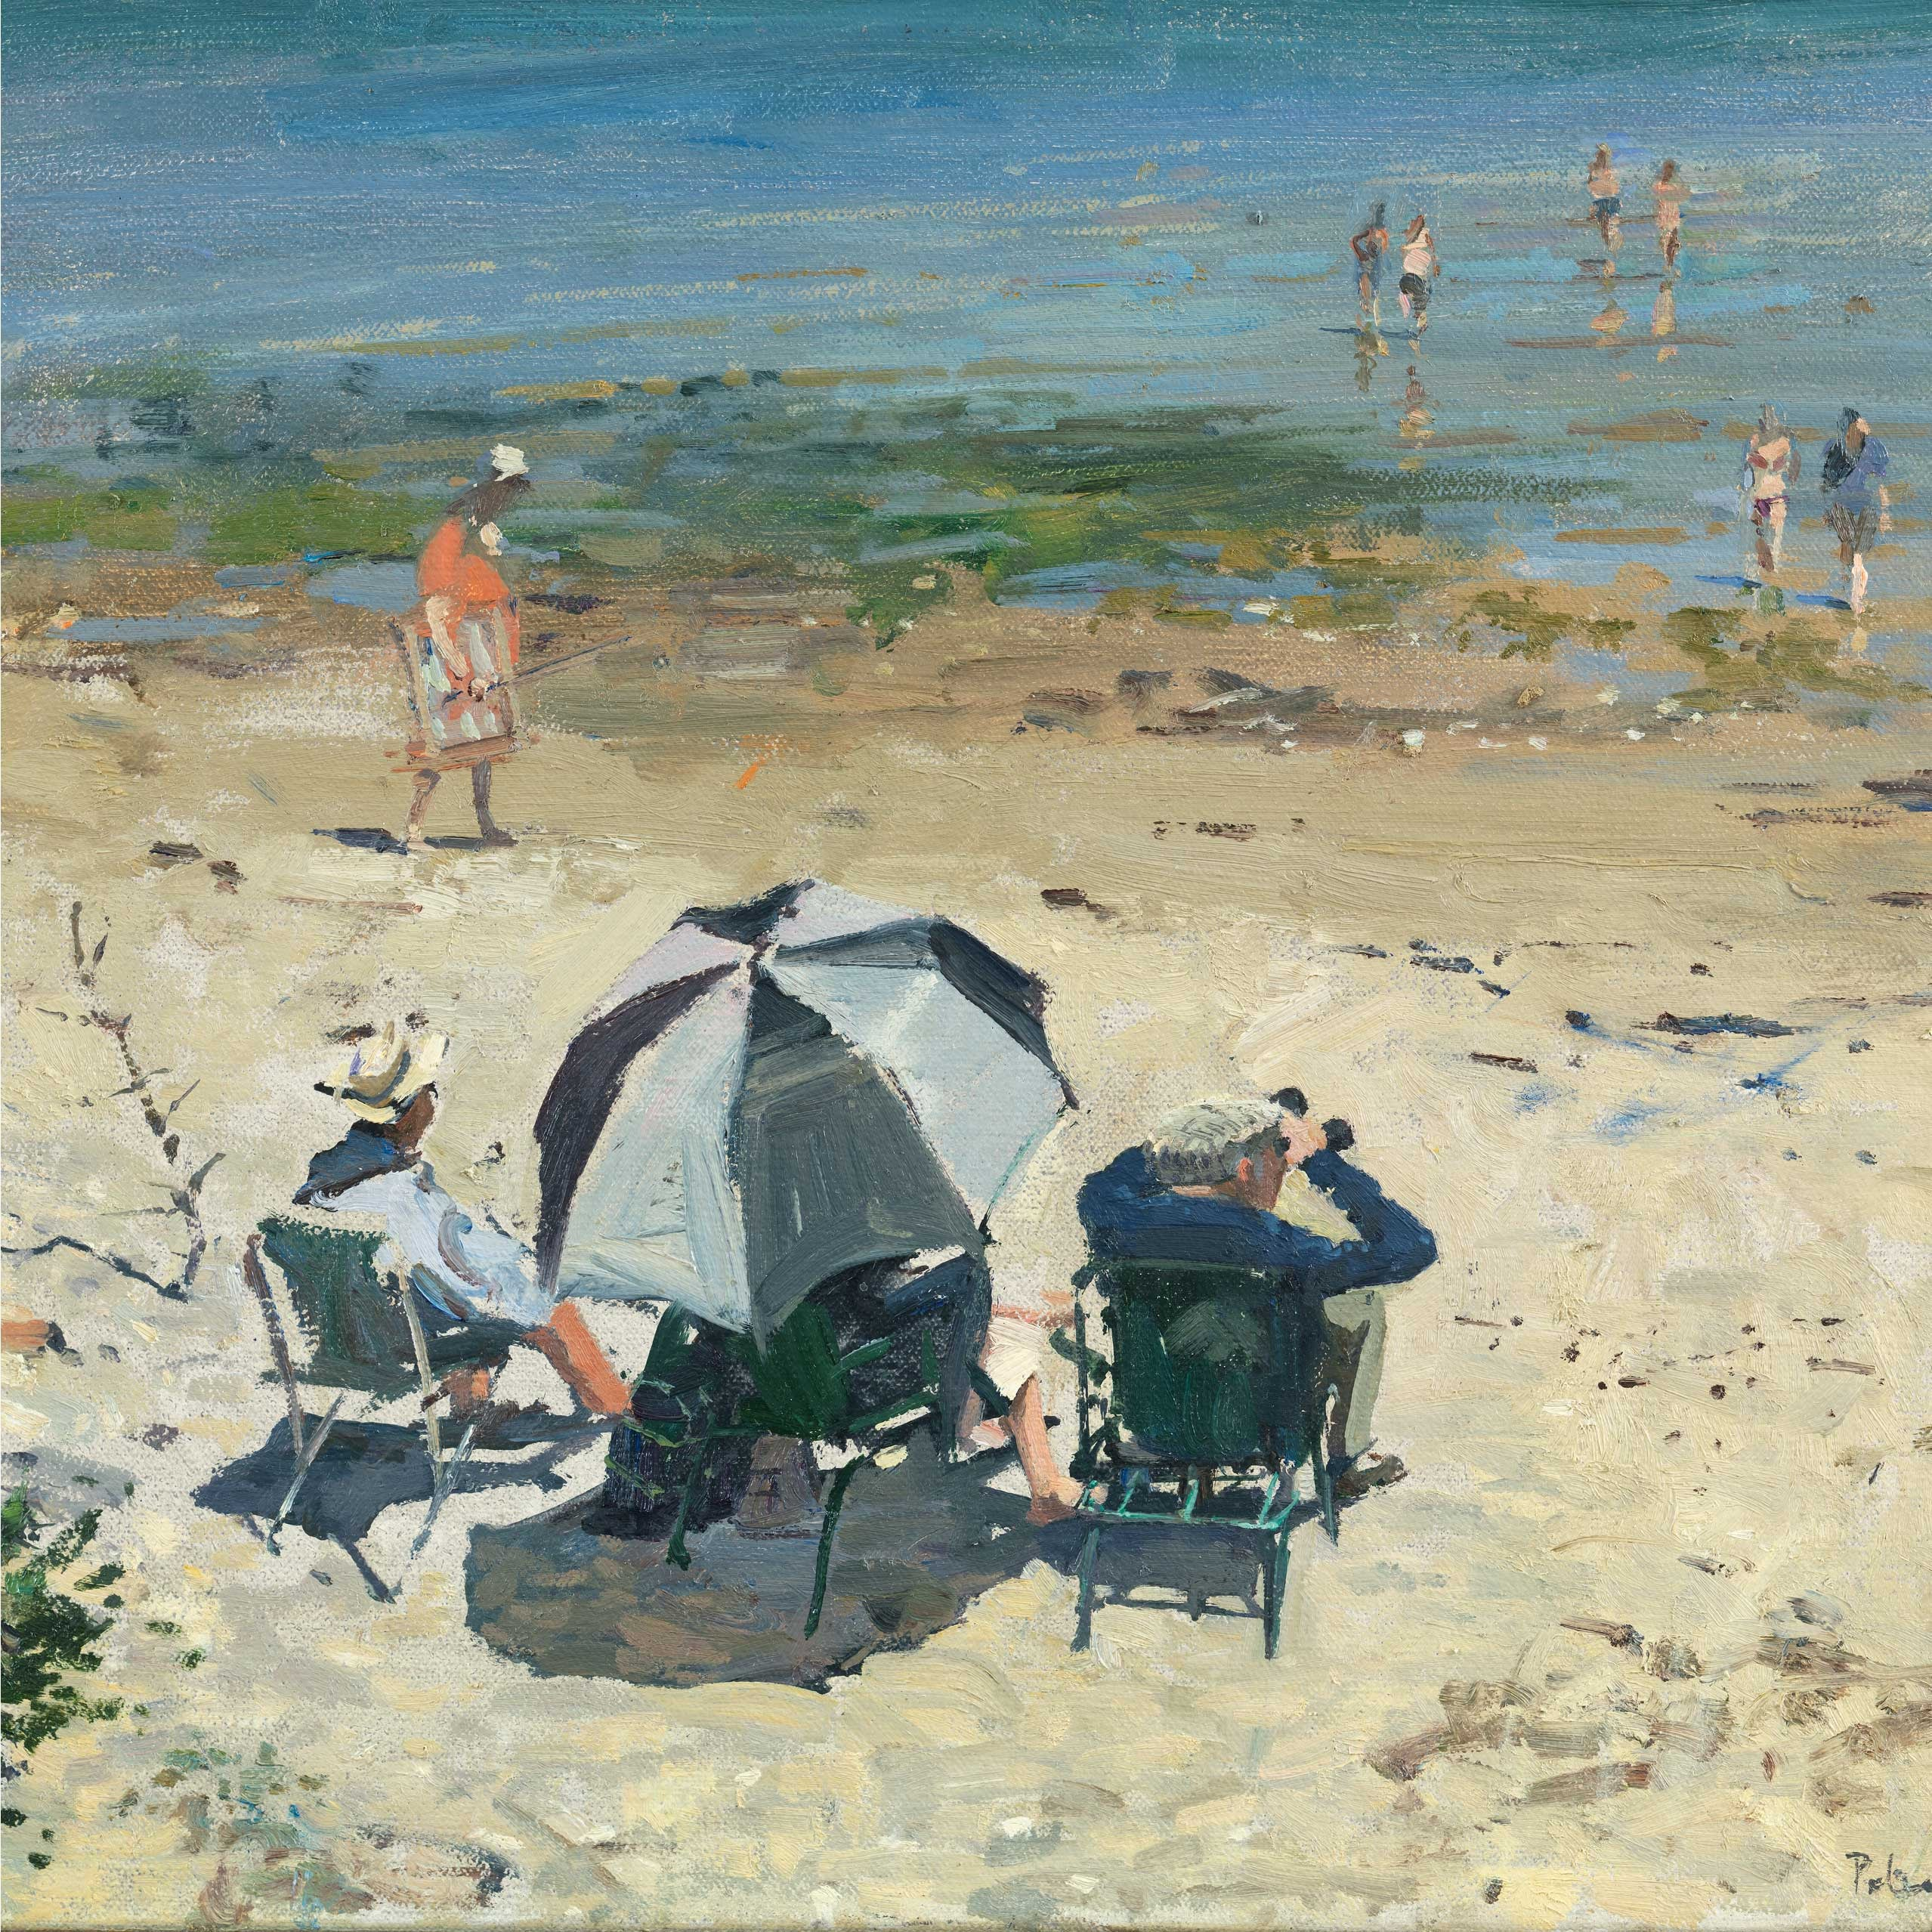 Afternoon on the Beach by Peter Brown, Fine Art Greeting Card, NEAC range, Beach scene